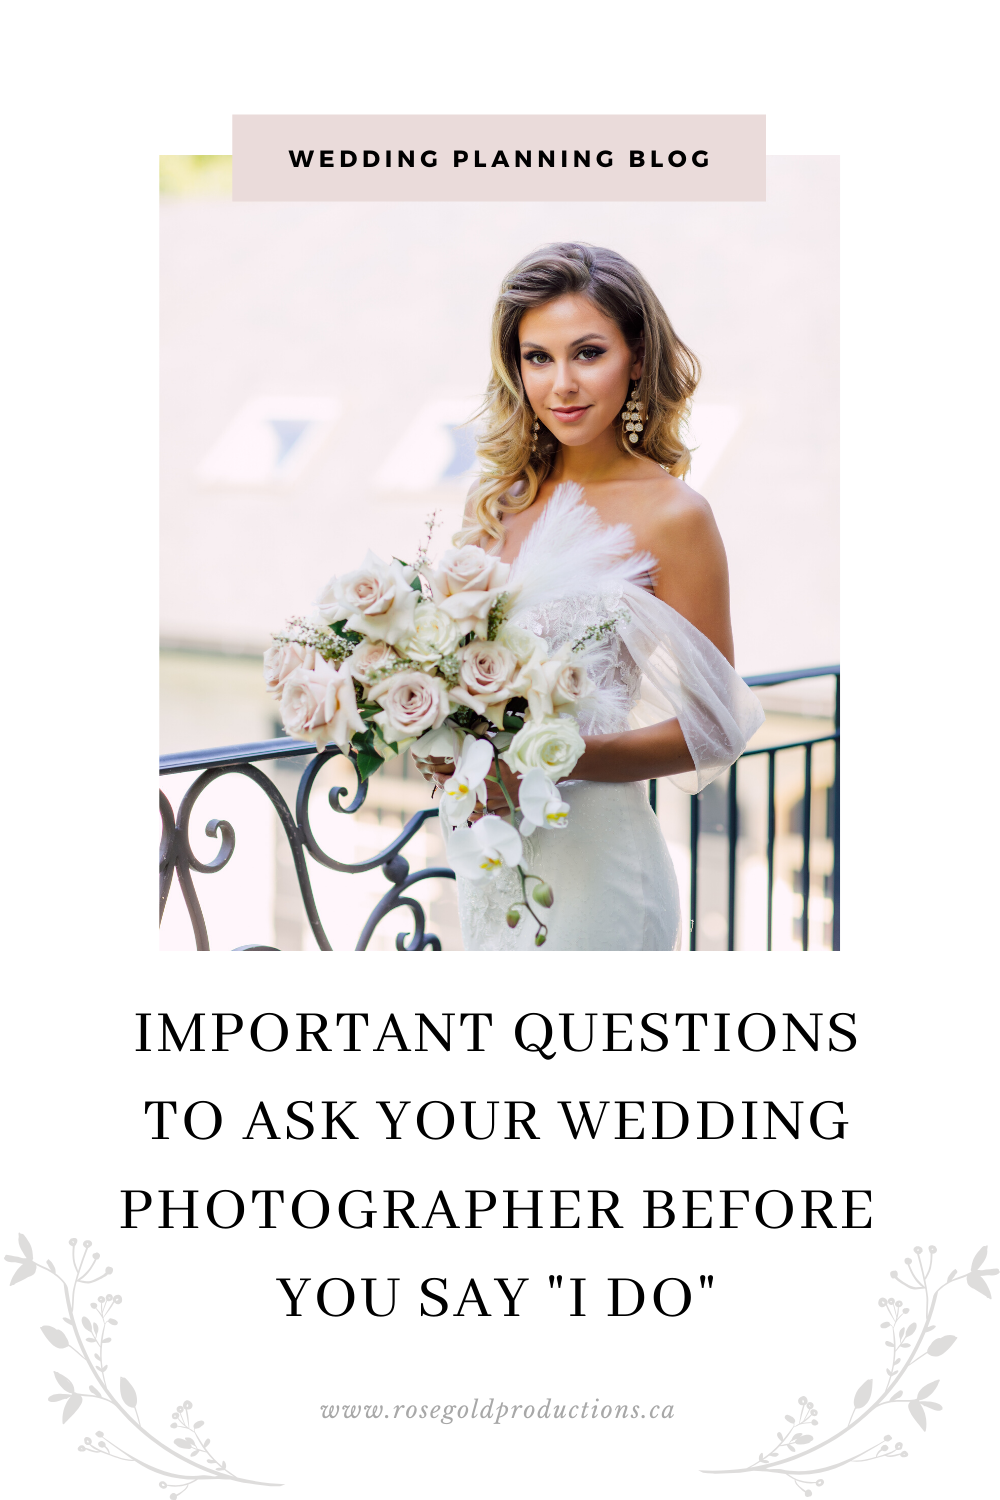 Are you a bride to be? Check out this blog post to see the IMPORTANT QUESTIONS TO ASK YOUR WEDDING PHOTOGRAPHER BEFORE YOU SAY